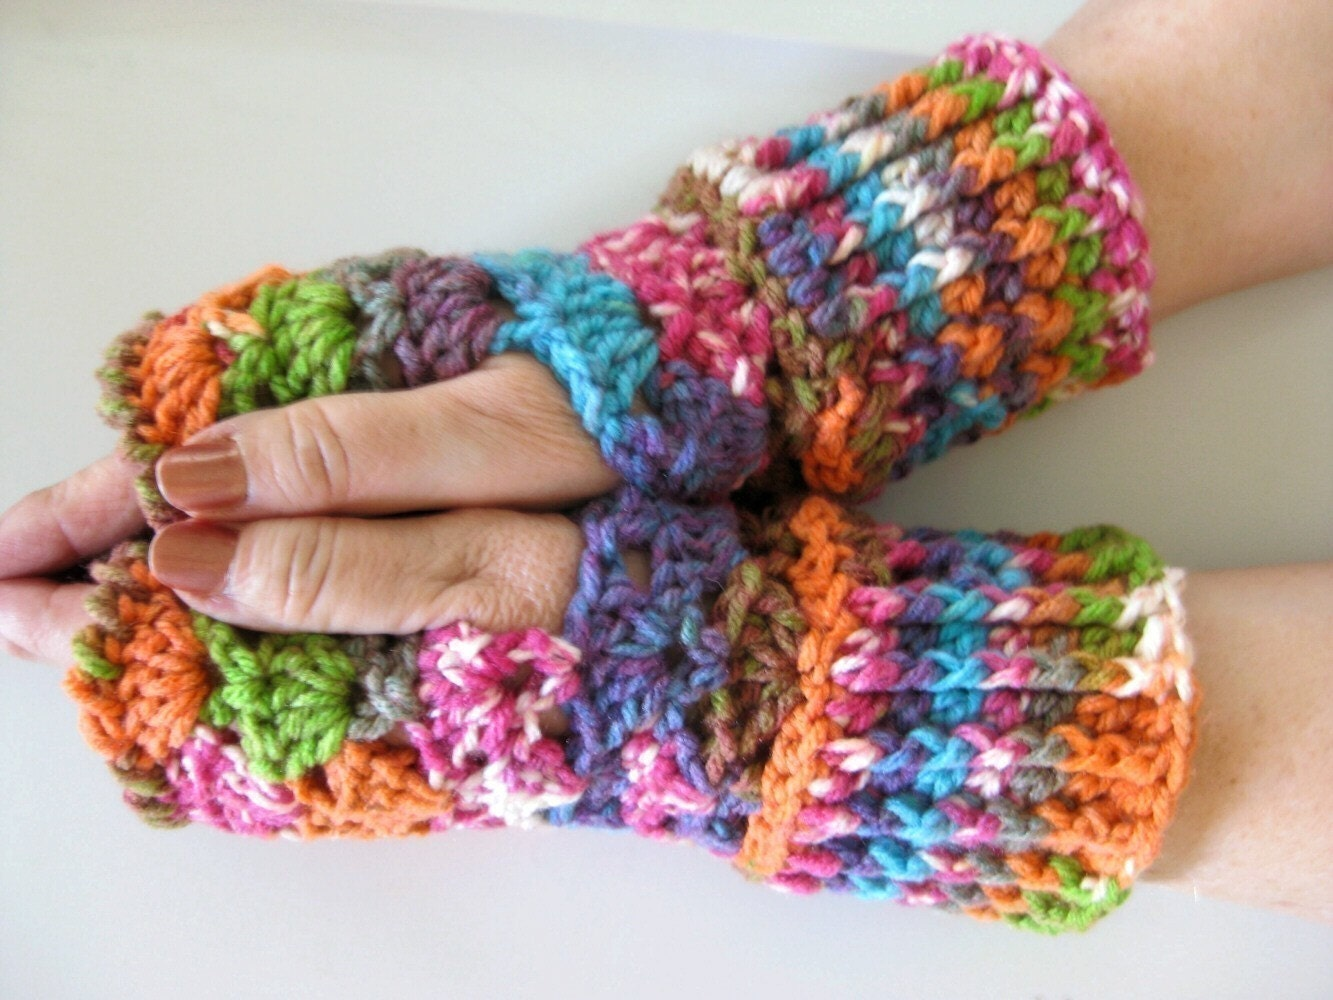 Crochet Patterns Gloves Fingerless : Fingerless Gloves Crochet pattern How to crochet by crochetgal